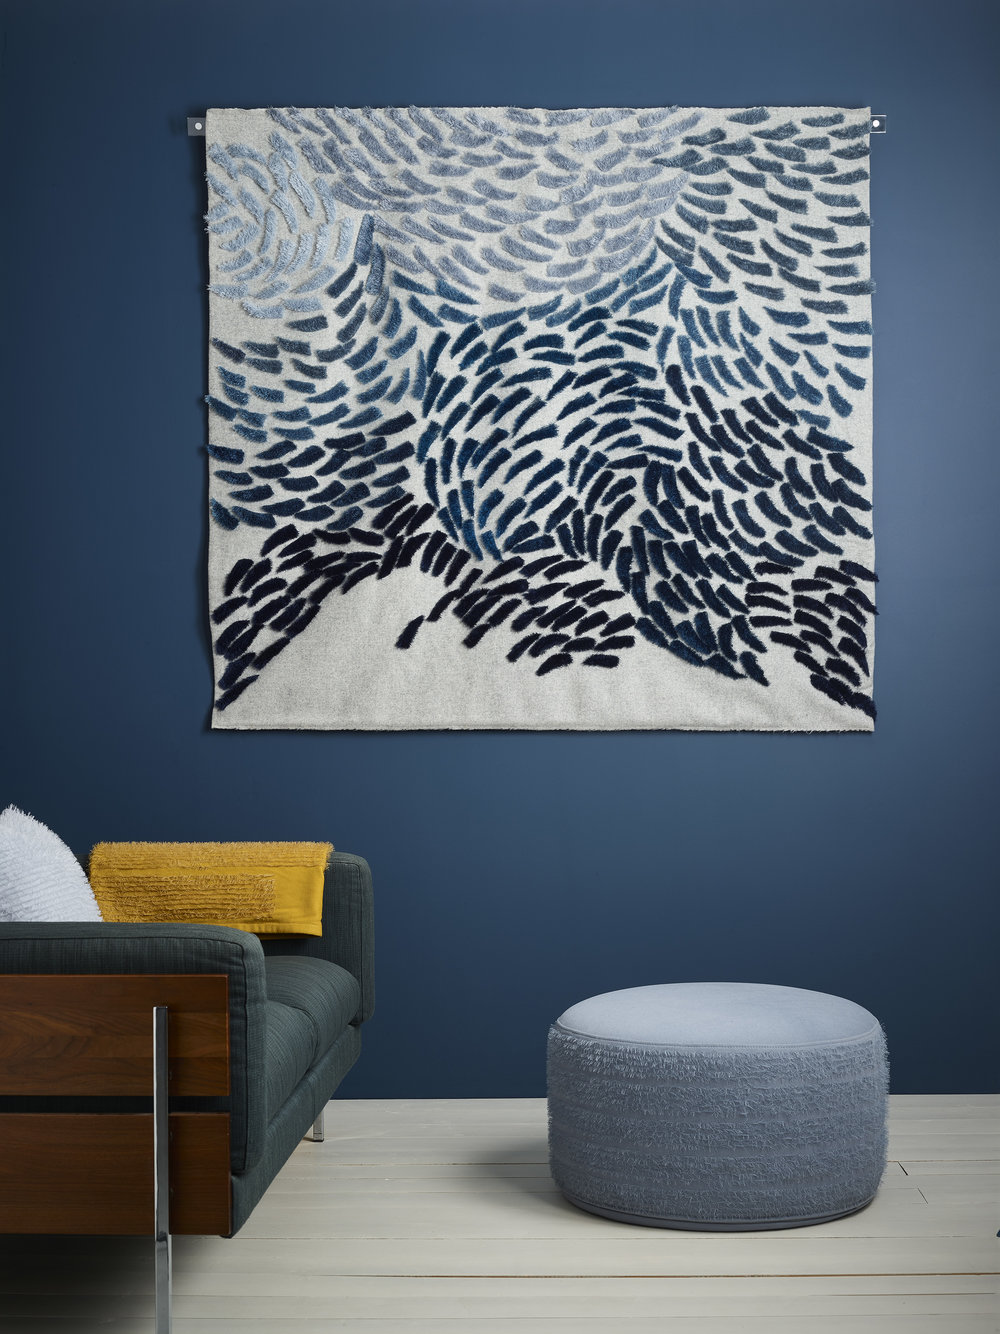 Anna Gravelle's 'Murmuration' wall art and soft furnishings ©Anna Gravelle